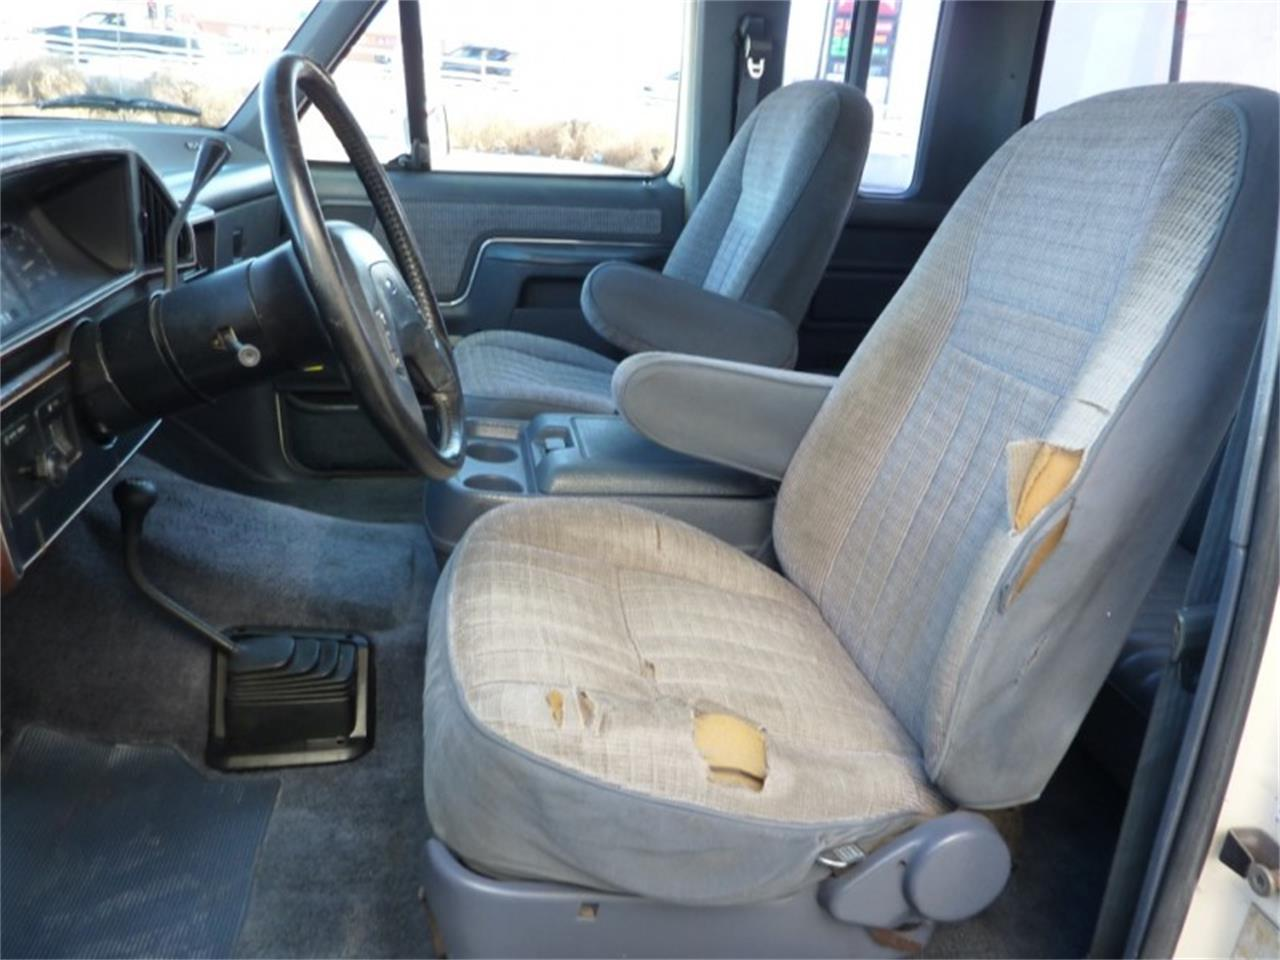 1989 Ford 3/4 Ton Pickup for sale in Pahrump, NV – photo 25